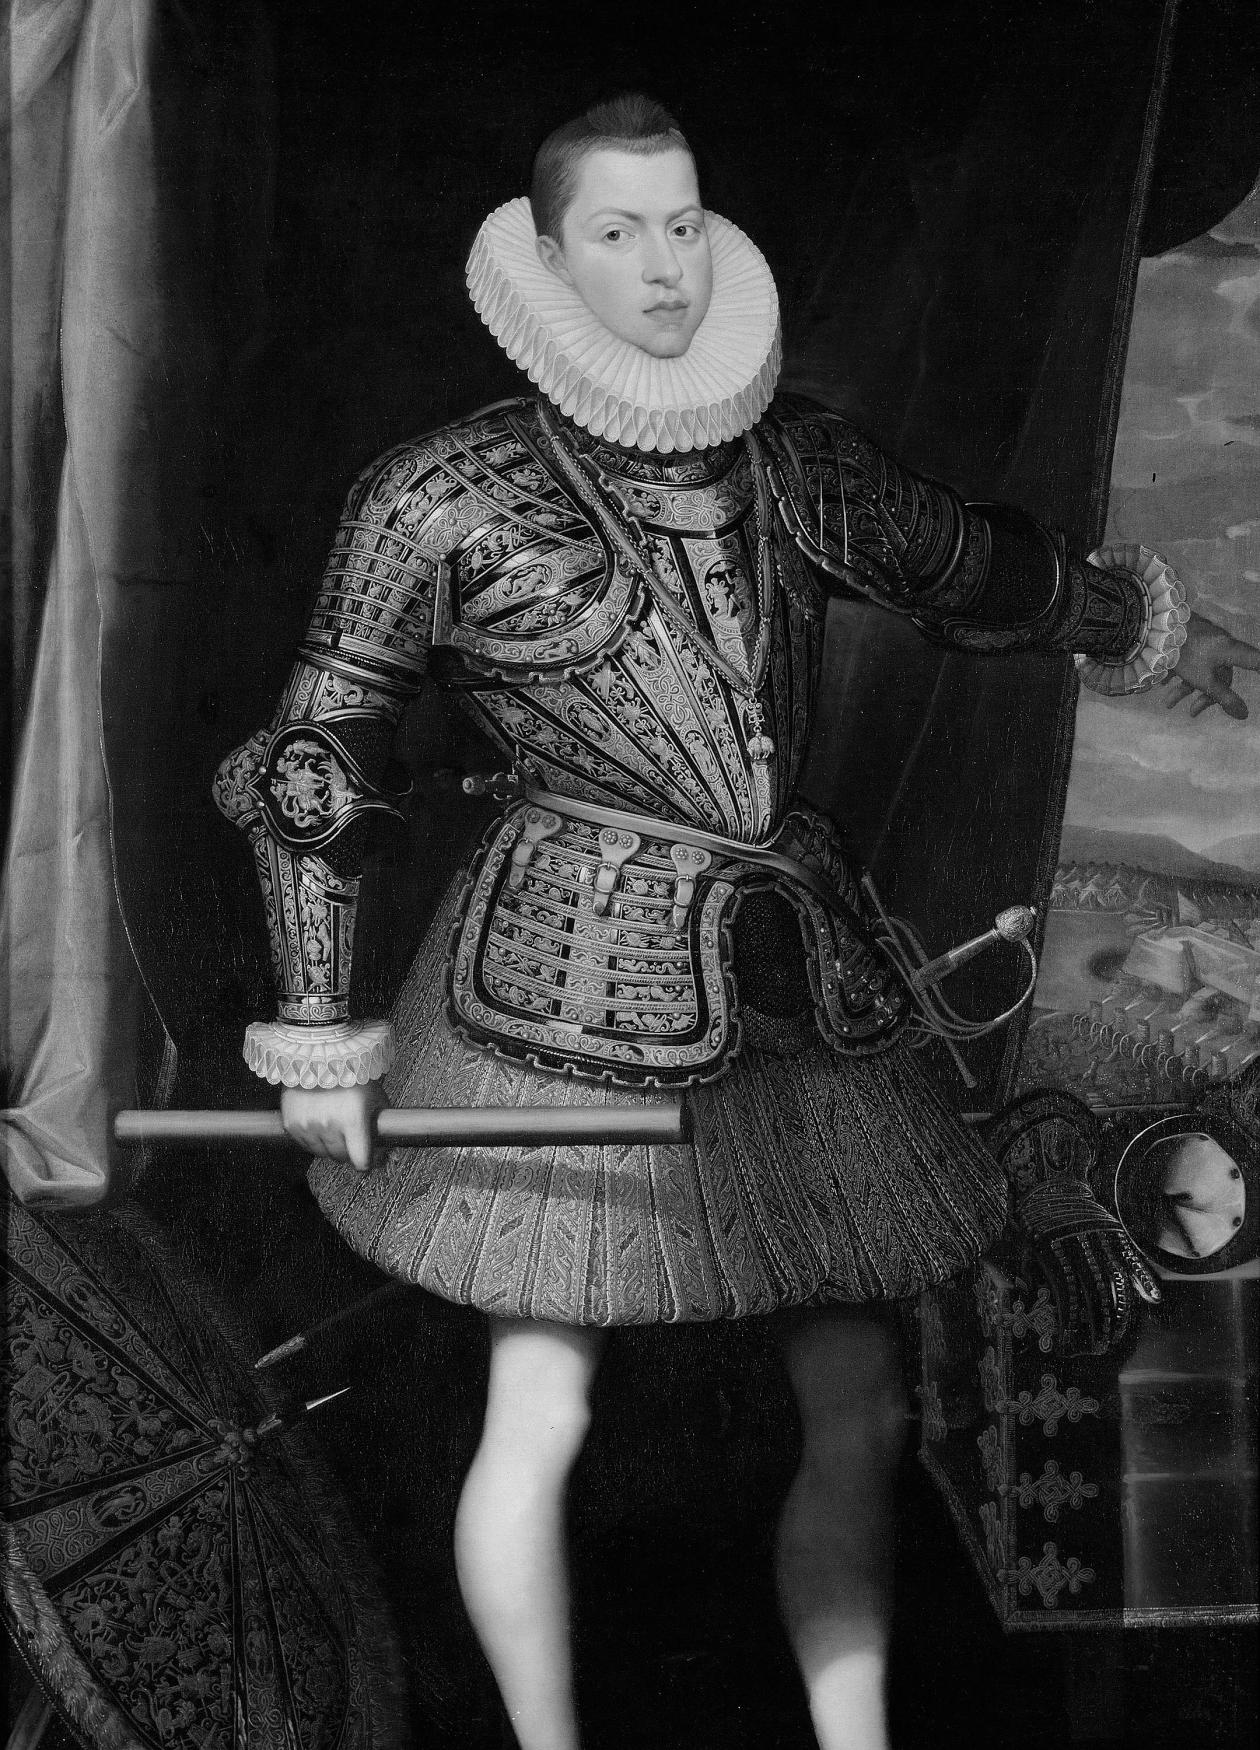 King Philip III in a high ruffled collar and armor, holding a spear